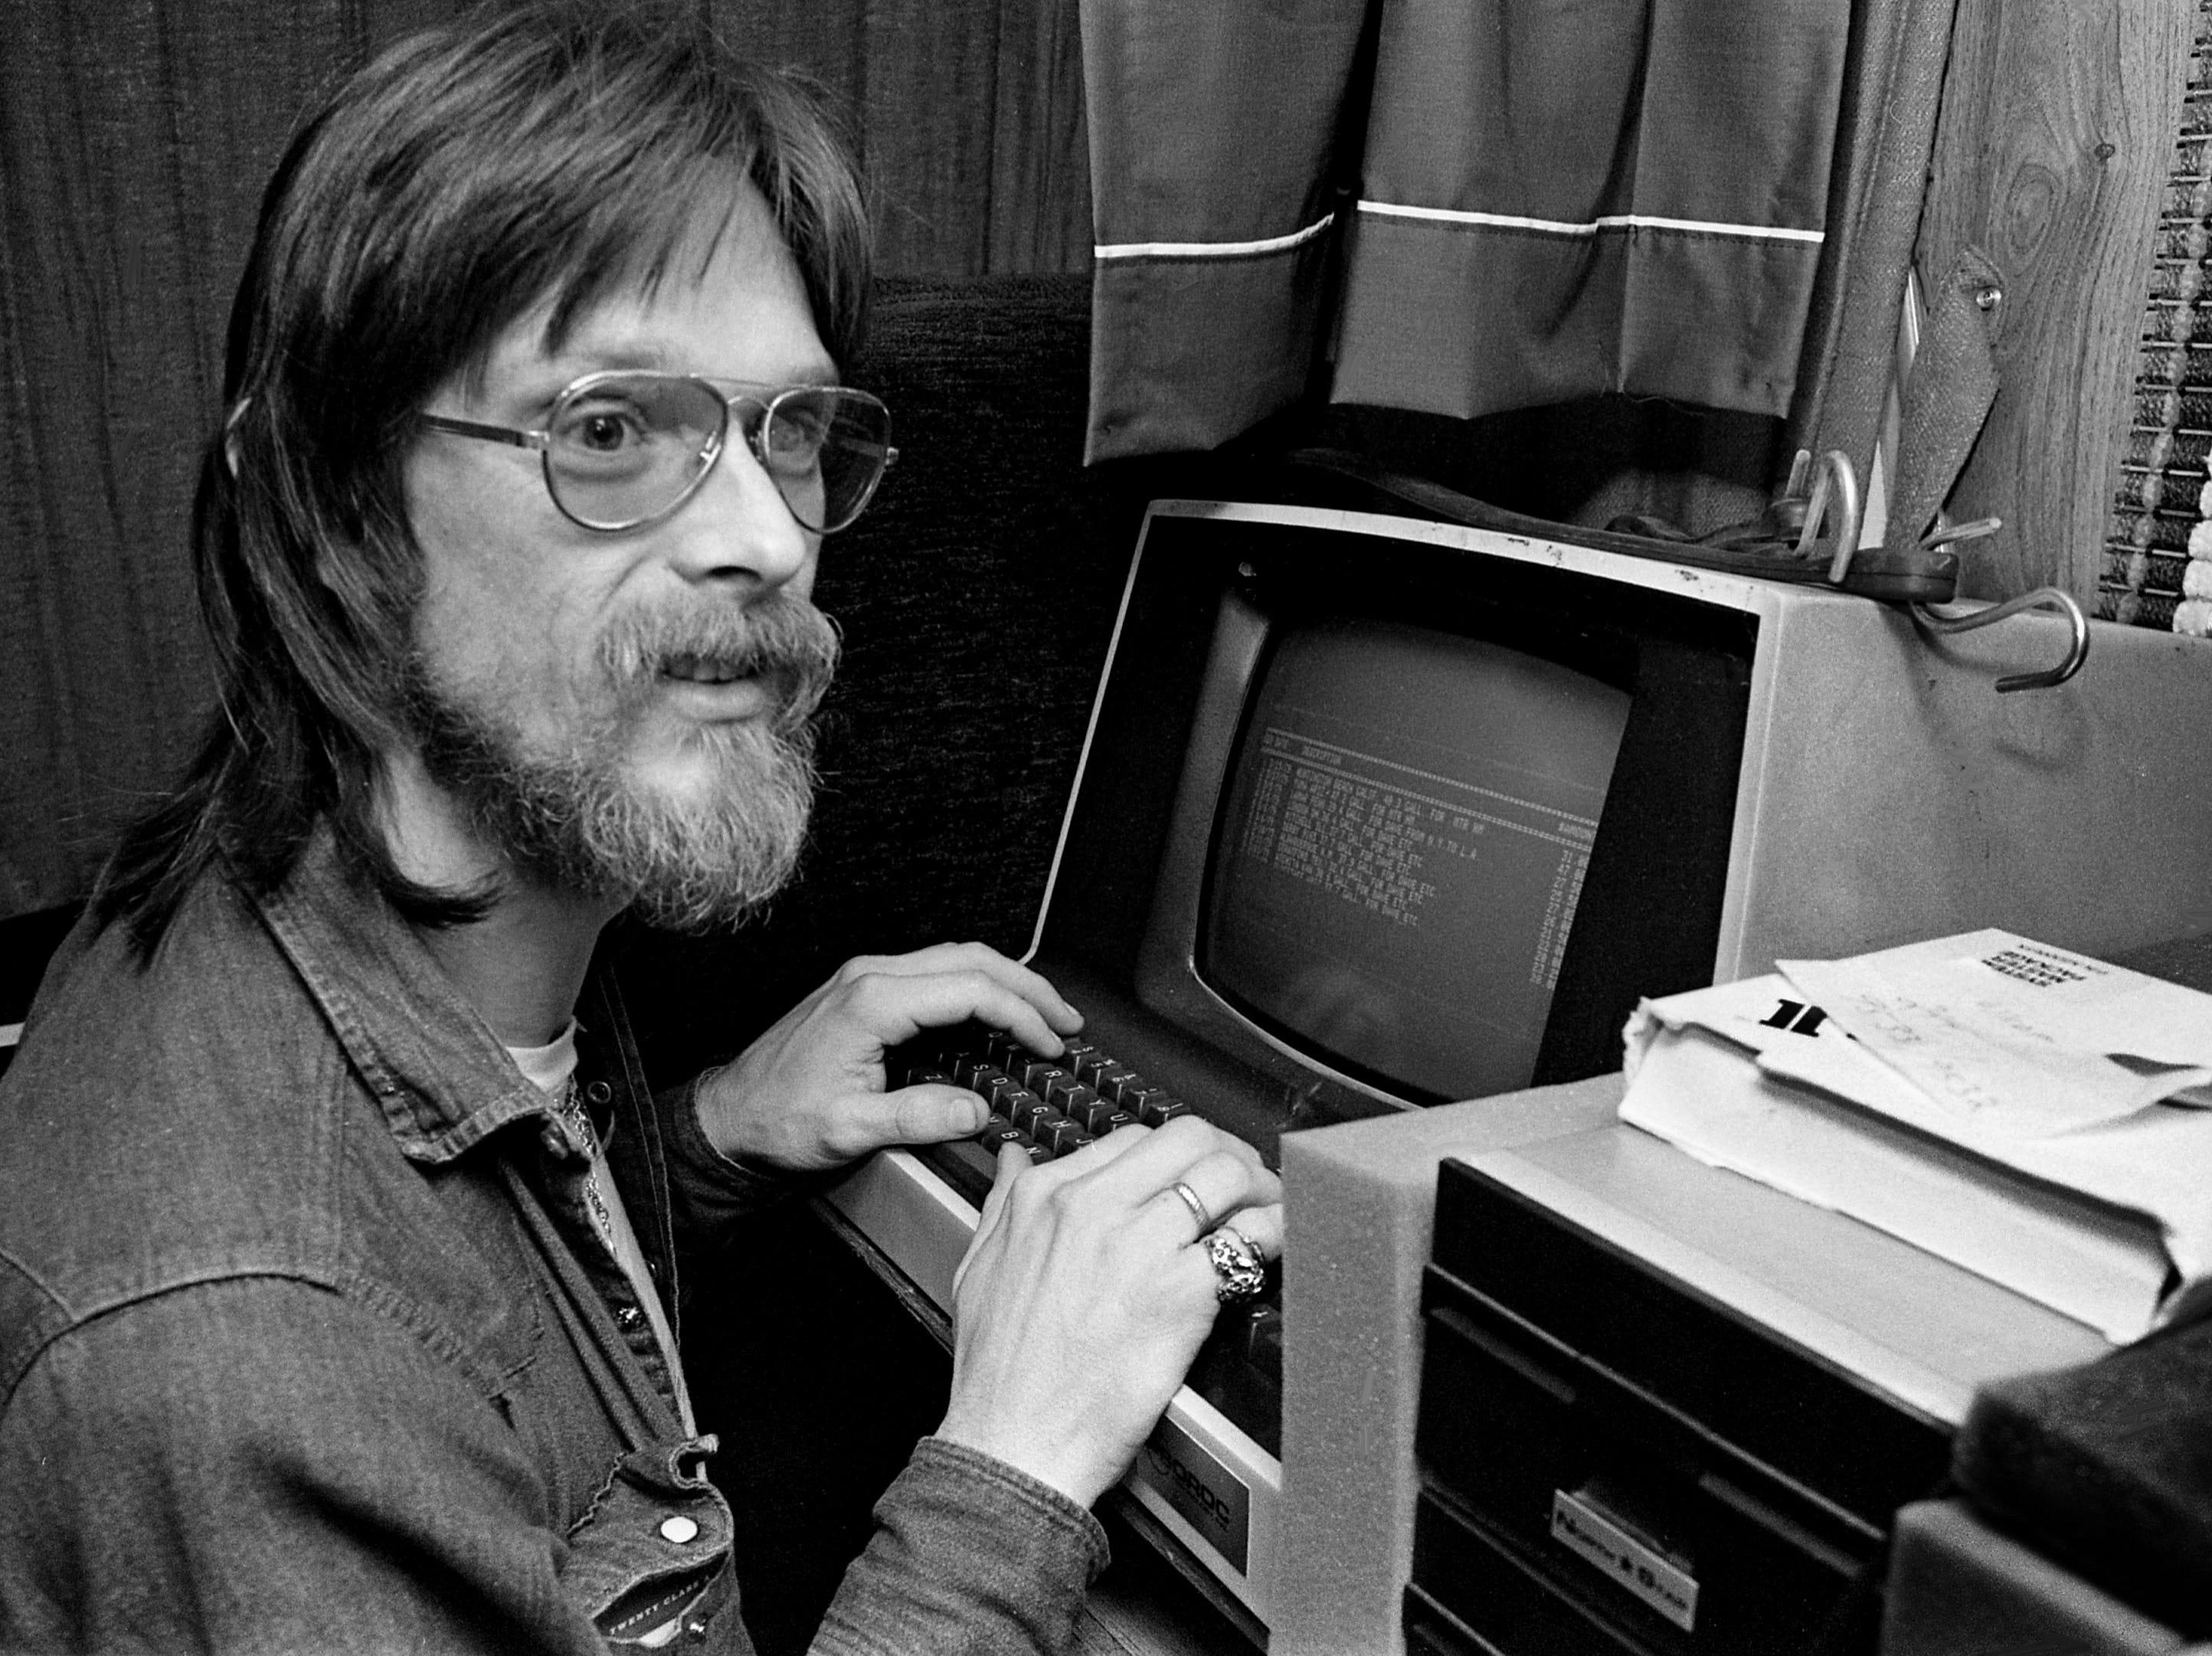 No matter how much he spends in road expenses, singer/songwriter Shawn Phillips gets no arguments from his book keeper, an IMSAI computer that he carries in his mobile home. He is typing his expenses from a trip to Italy while in the mobile home parked on the back lot of the Exit/In on Elliston Place on April 5, 1979.